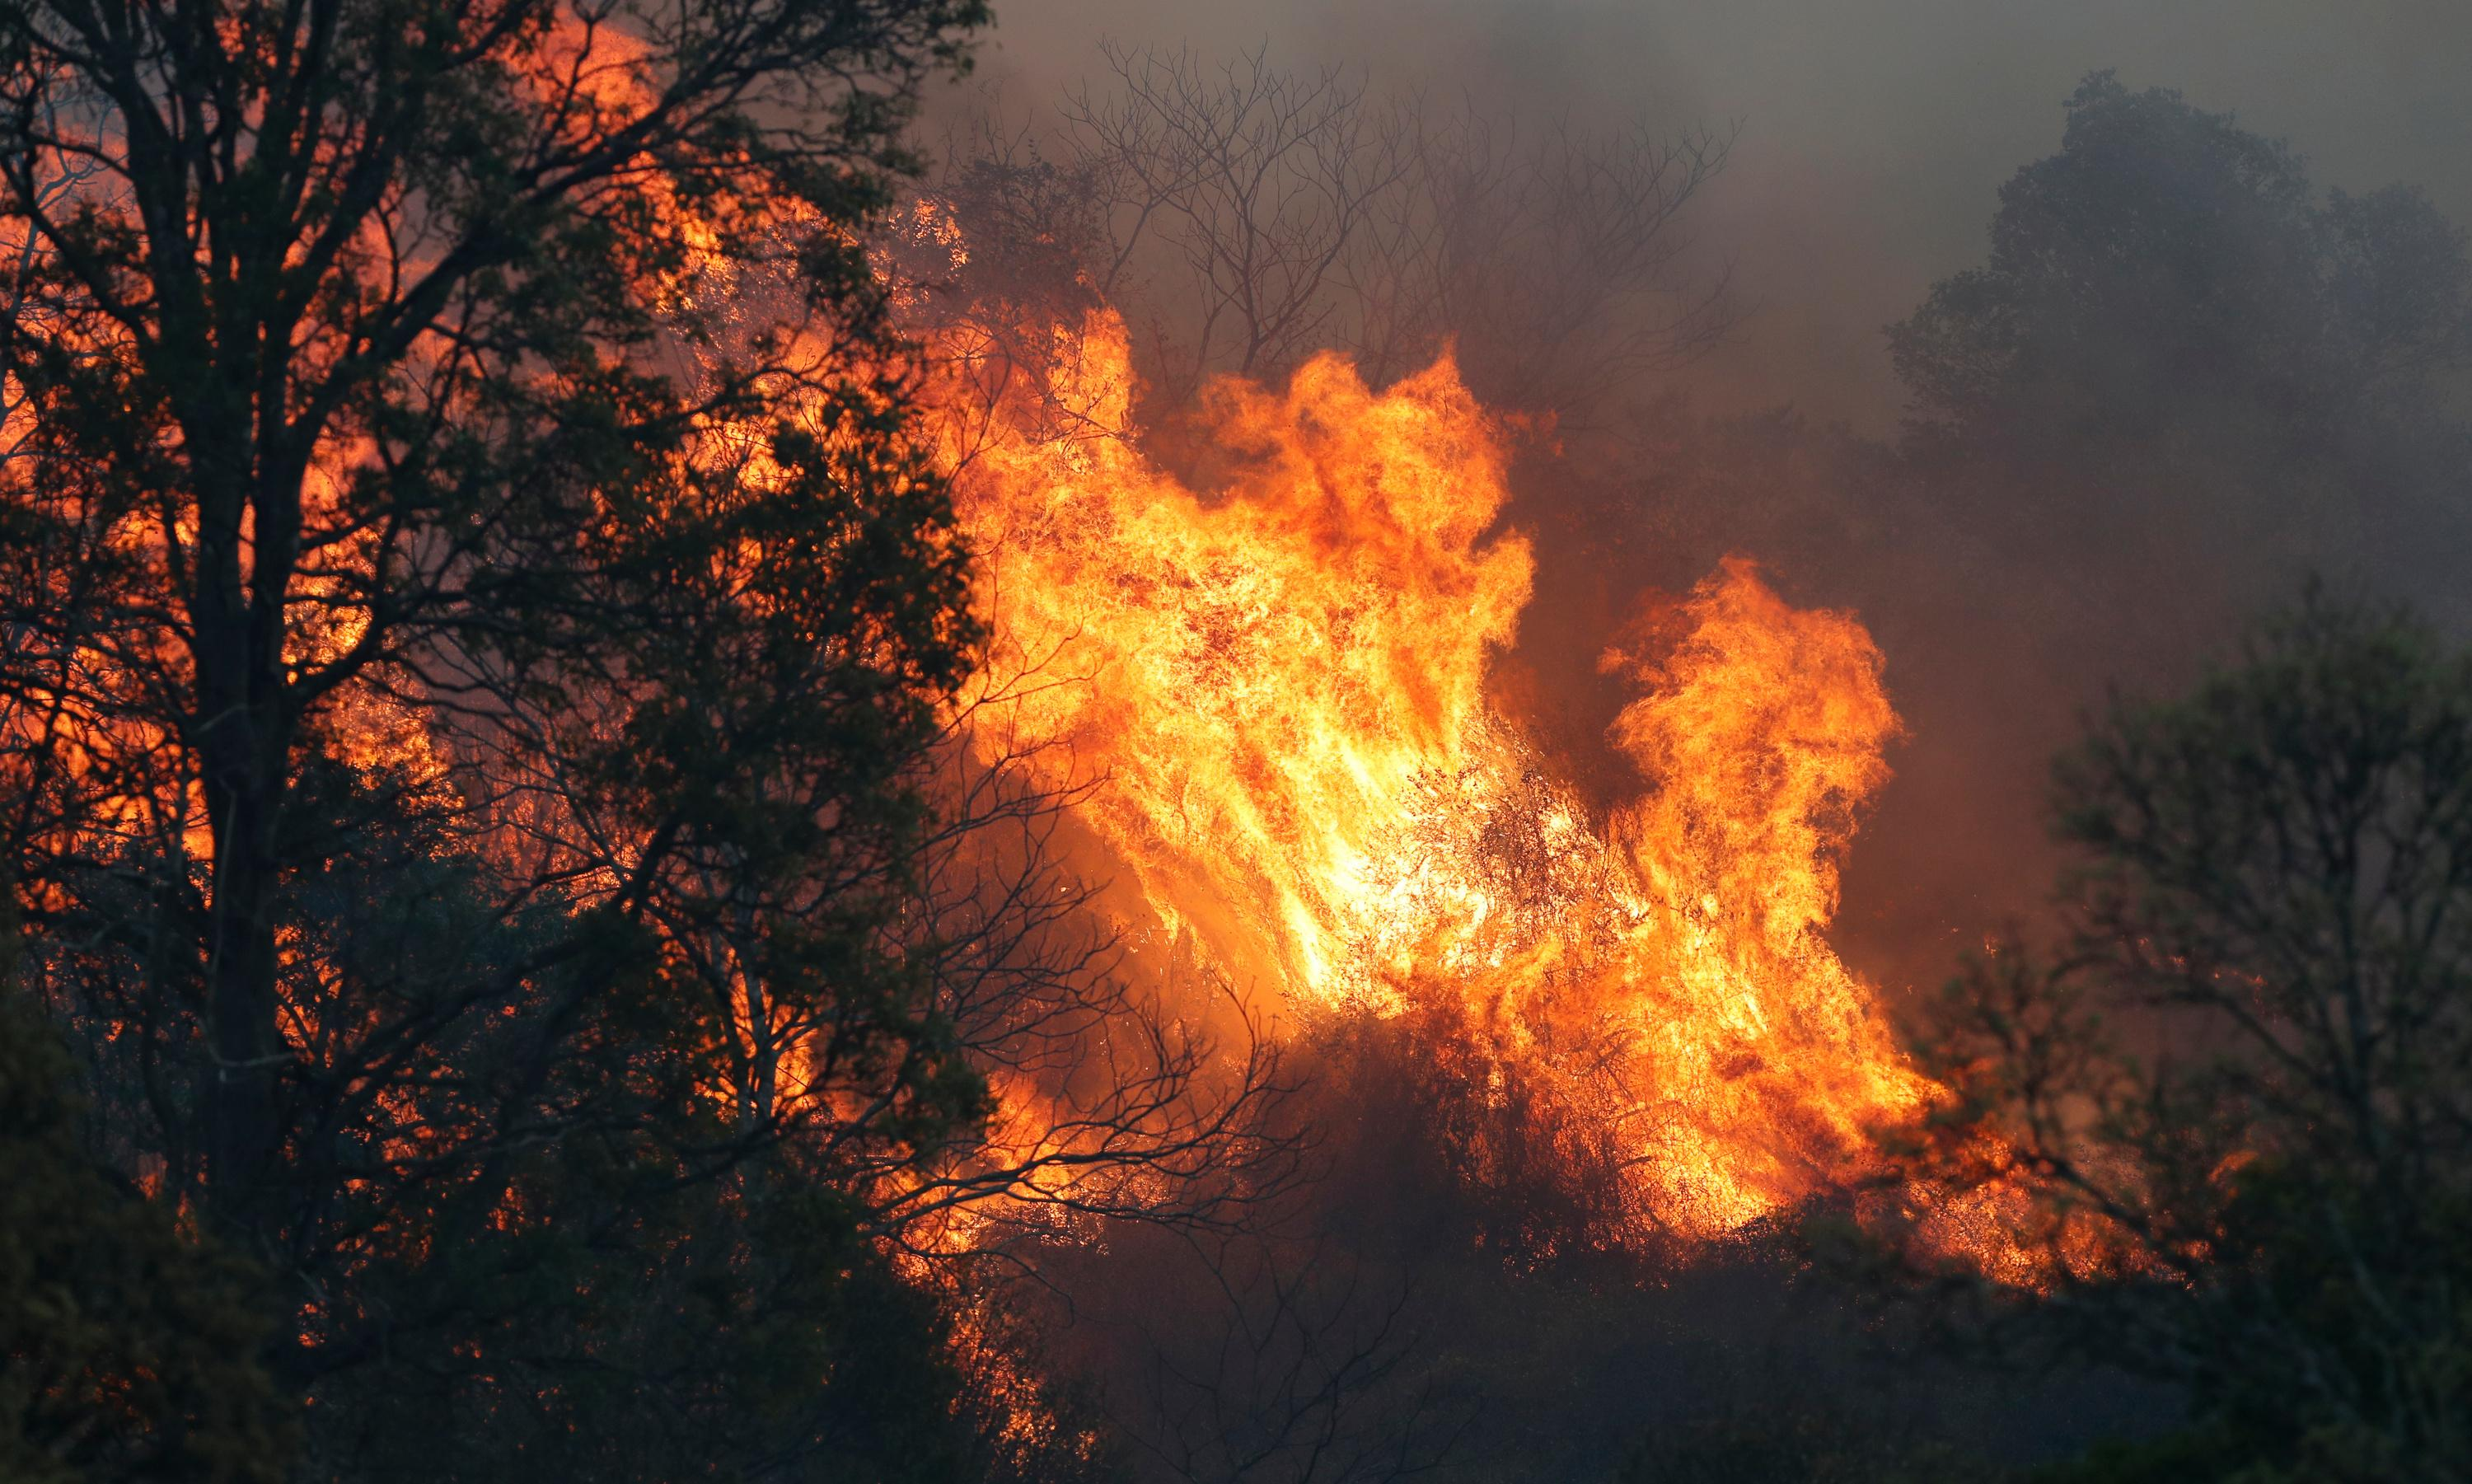 Bushfires: more than 20 homes lost as more than 70 blazes rage in Queensland and NSW